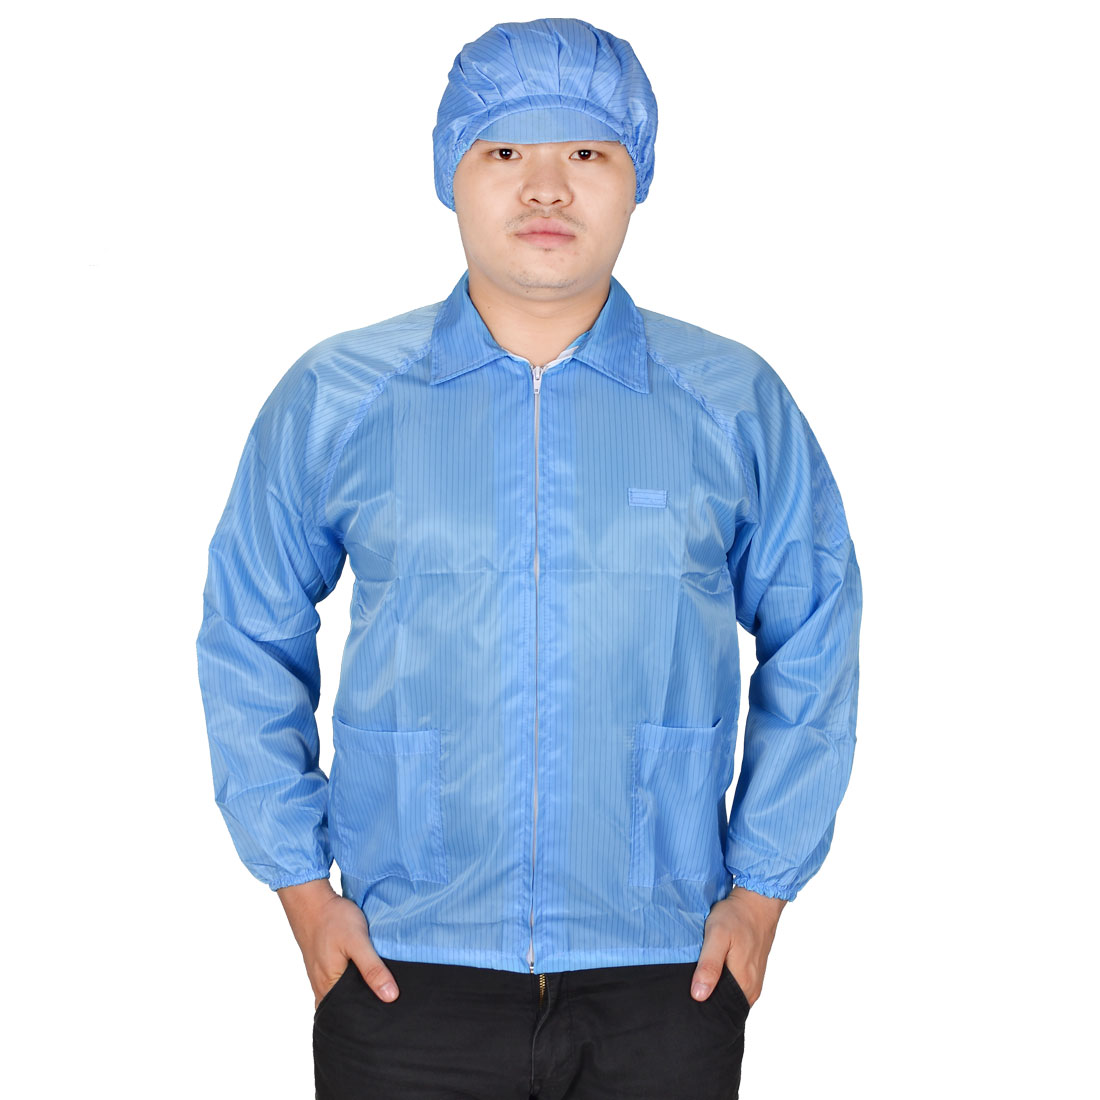 Women Men Blue Elastic Cuff Patch Pockets Anti Static ESD Lab Smock Coat L